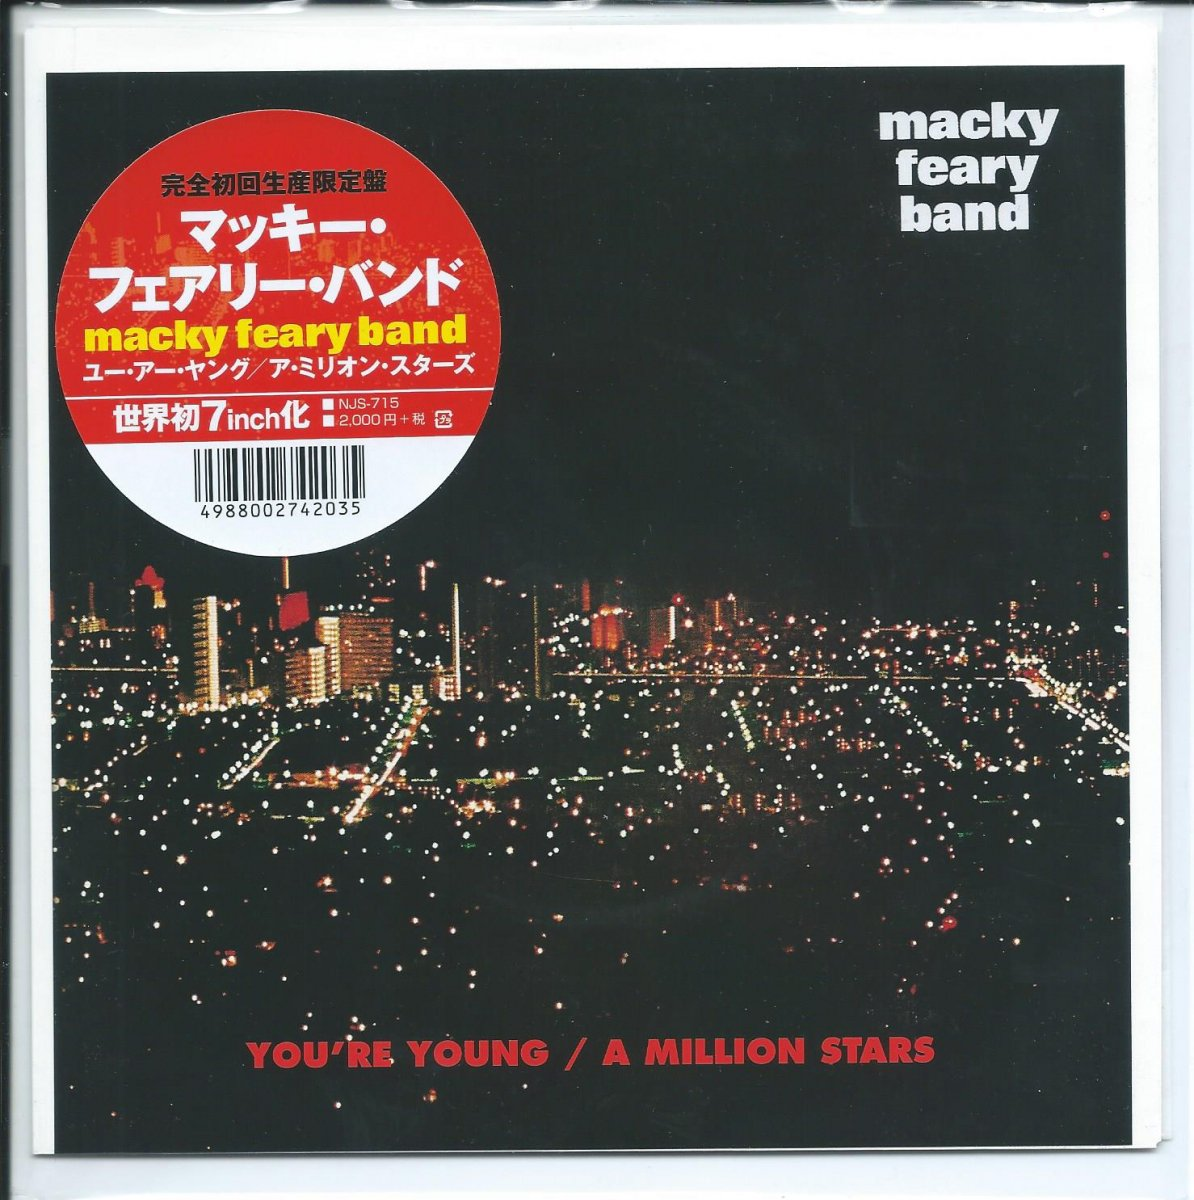 MACKY FEARY BAND ‎/ YOU'RE YOUNG / A MILLION STARS (7